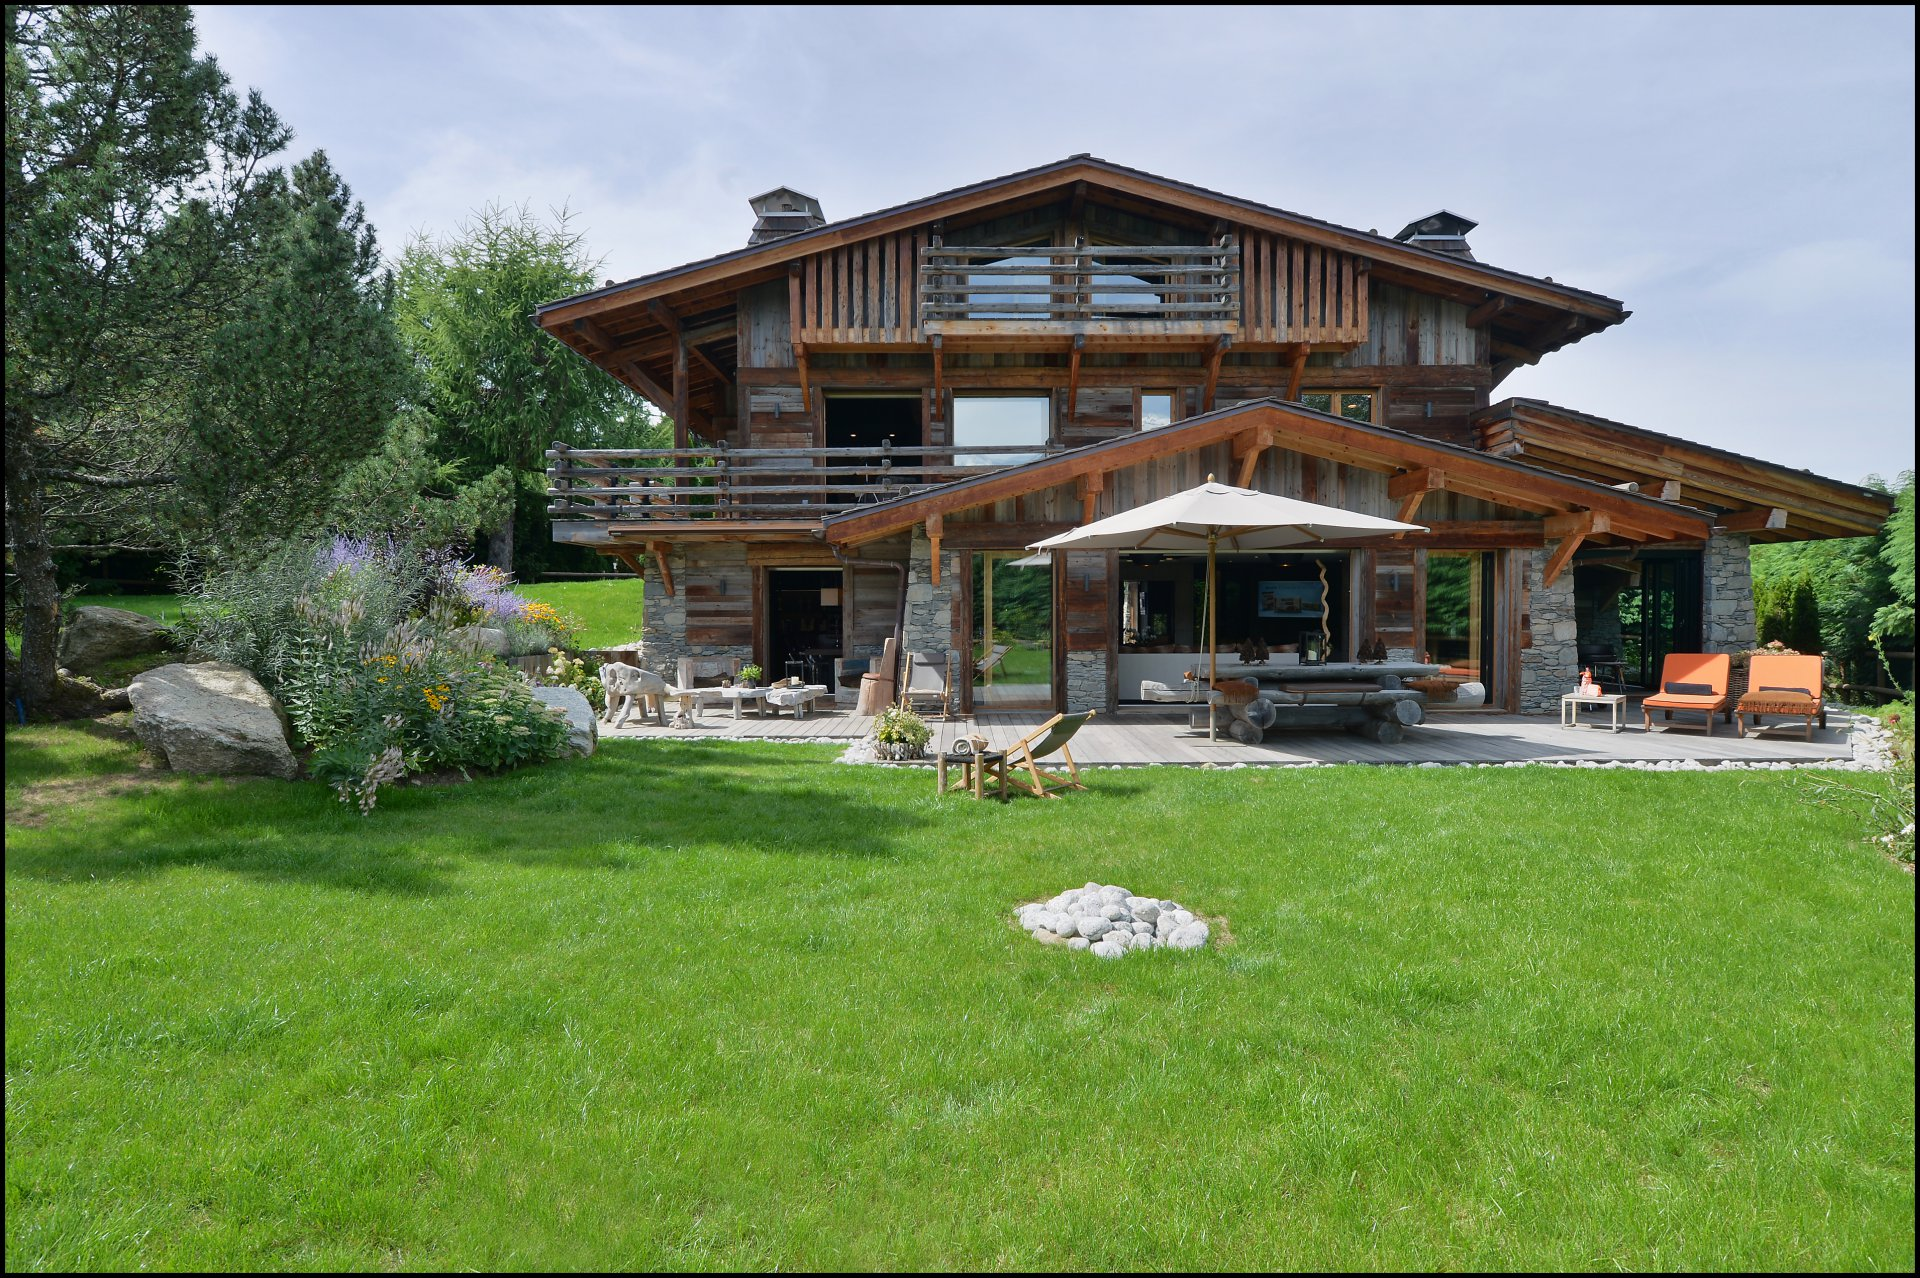 Combloux accommodation chalets for rent in Combloux apartments to rent in Combloux holiday homes to rent in Combloux